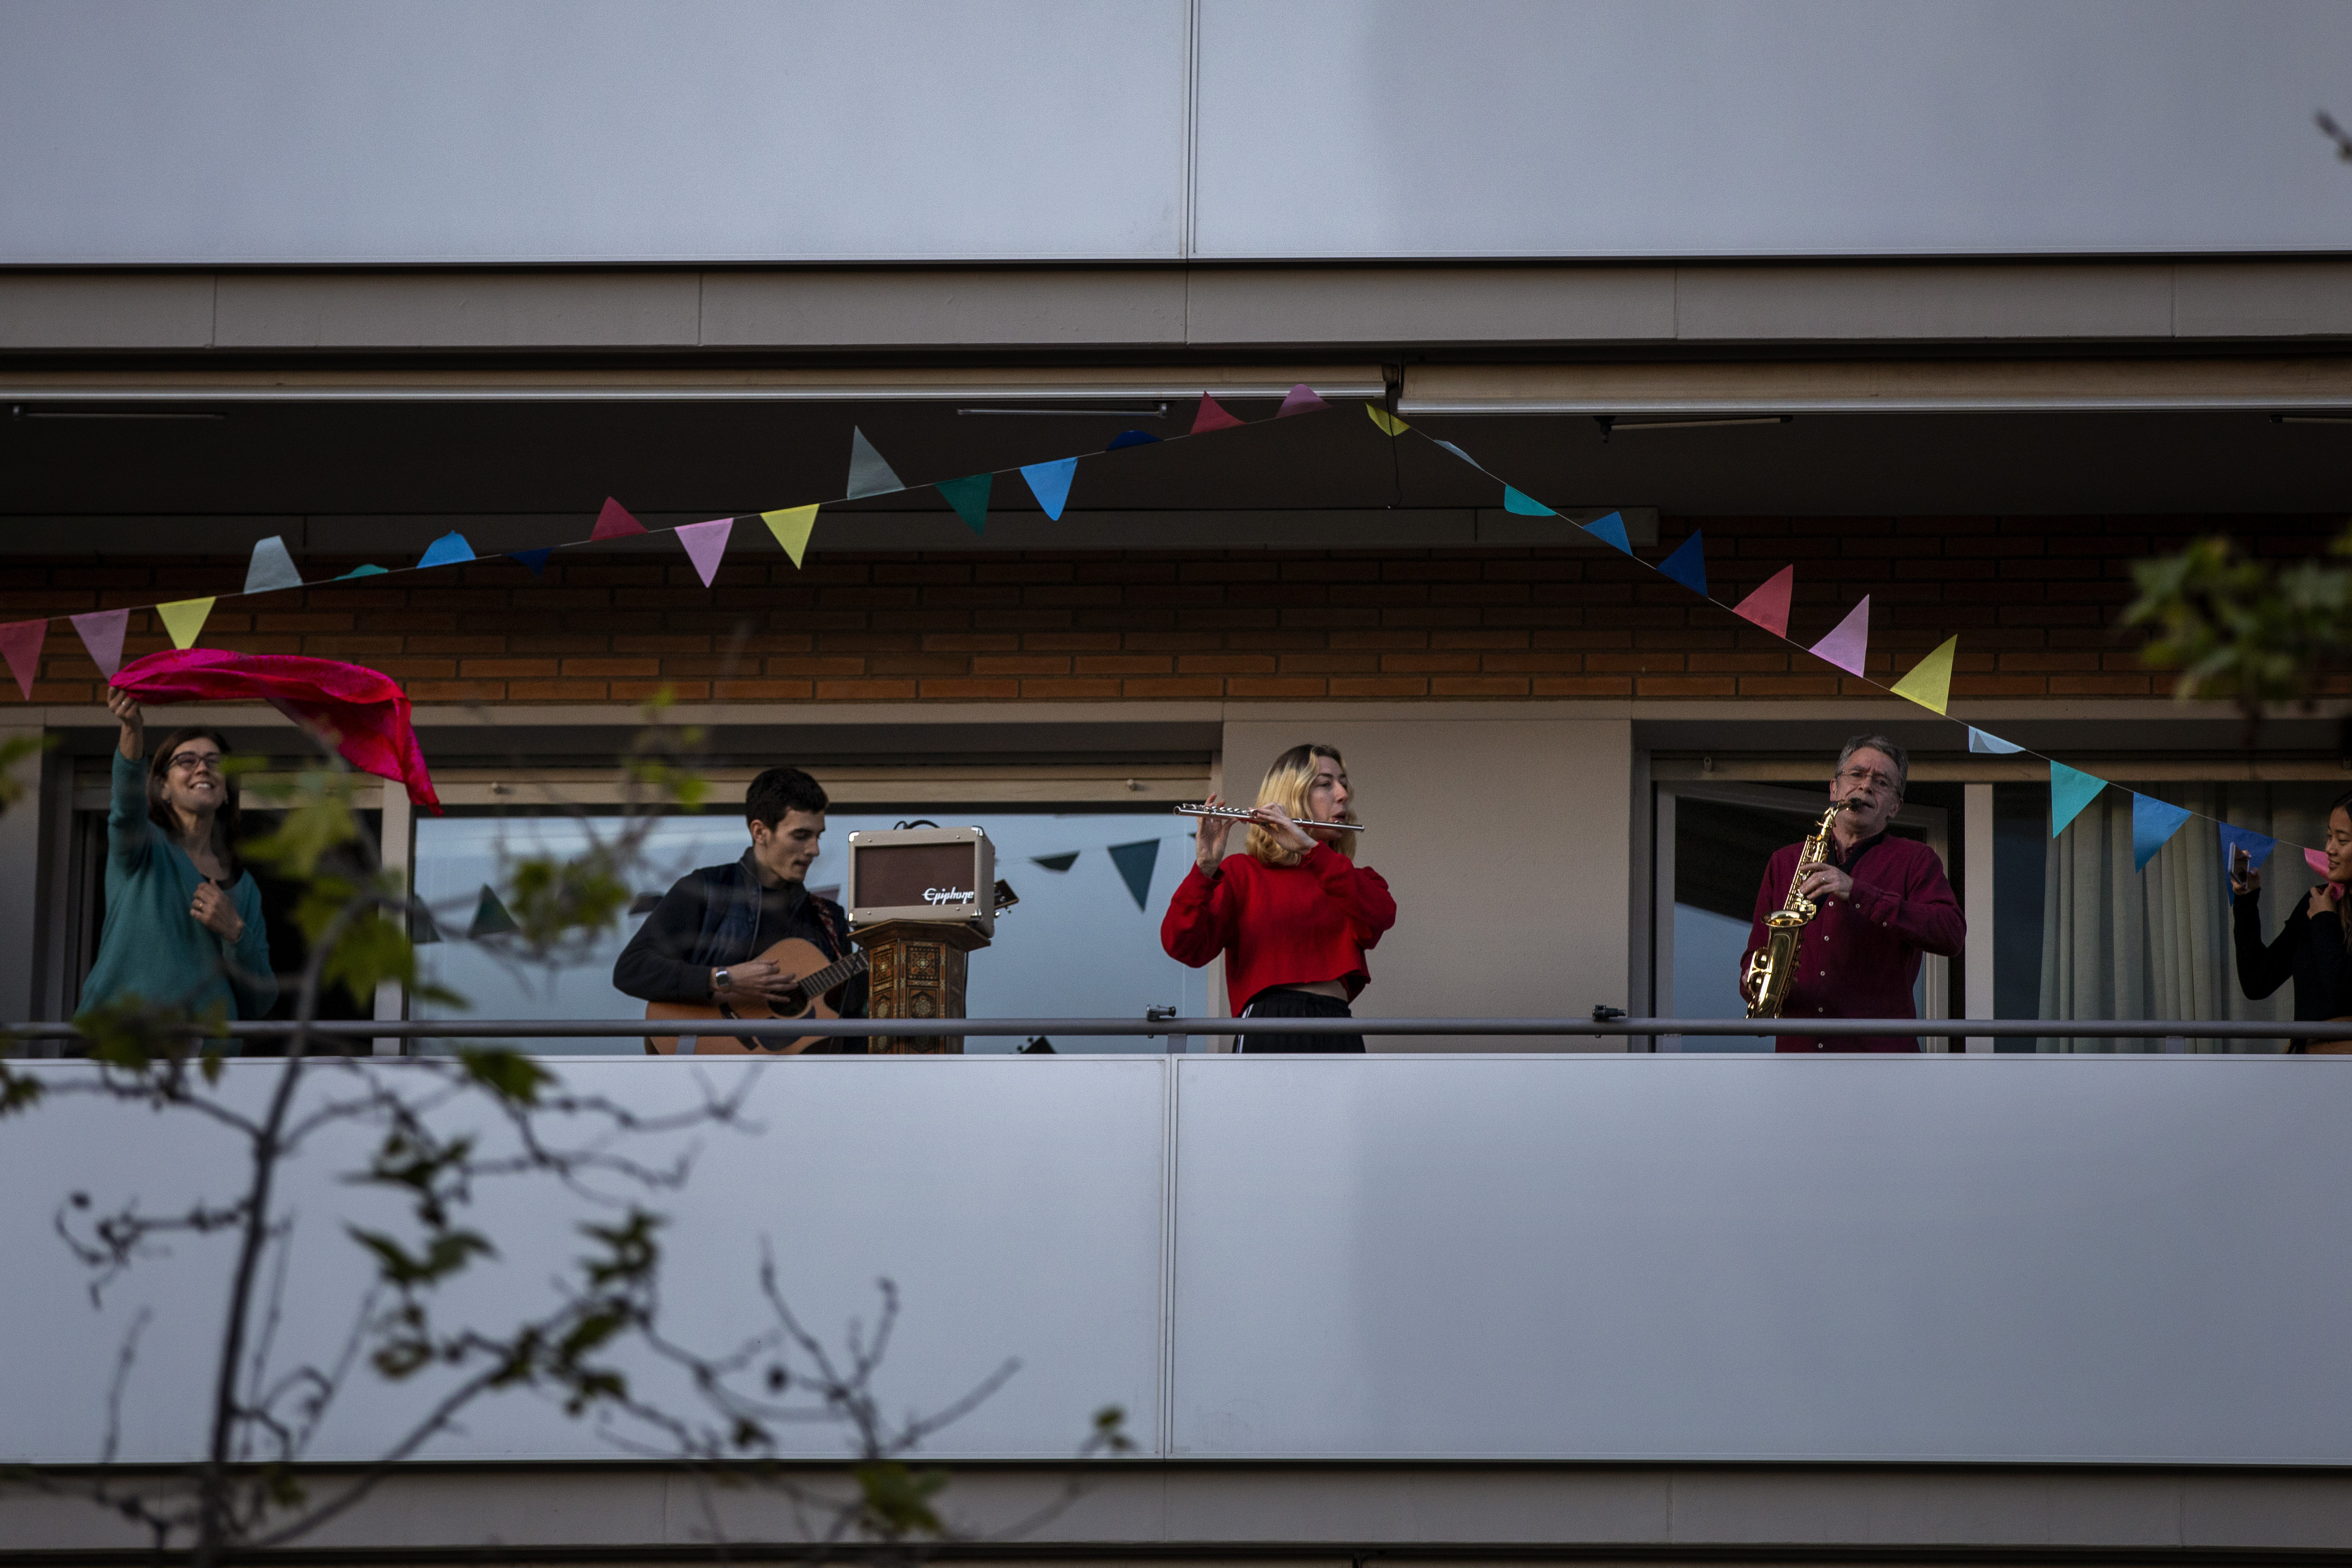 """Family members play their instruments performing the song """"Aleluya"""" on their balcony in support of the medical staff that are working on the COVID-19 virus outbreak in Barcelona, Spain, Sunday, April 5, 2020. Spanish Prime Minister Pedro Sanchez announced that he would ask the Parliament to extend the state of emergency by two more weeks, taking the lockdown on mobility until April 26. The new coronavirus causes mild or moderate symptoms for most people, but for some, especially older adults and people with existing health problems, it can cause more severe illness or death. (AP Photo/Emilio Morenatti)"""